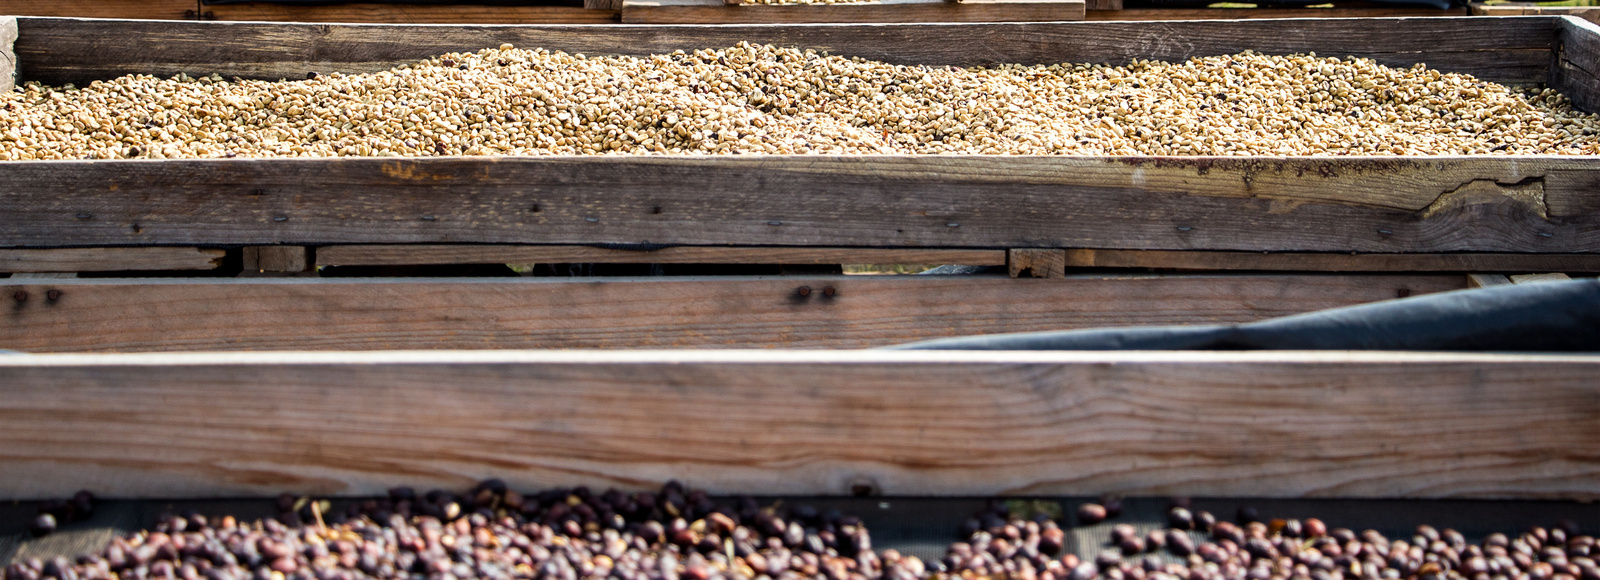 Drying beds with green coffee cherries